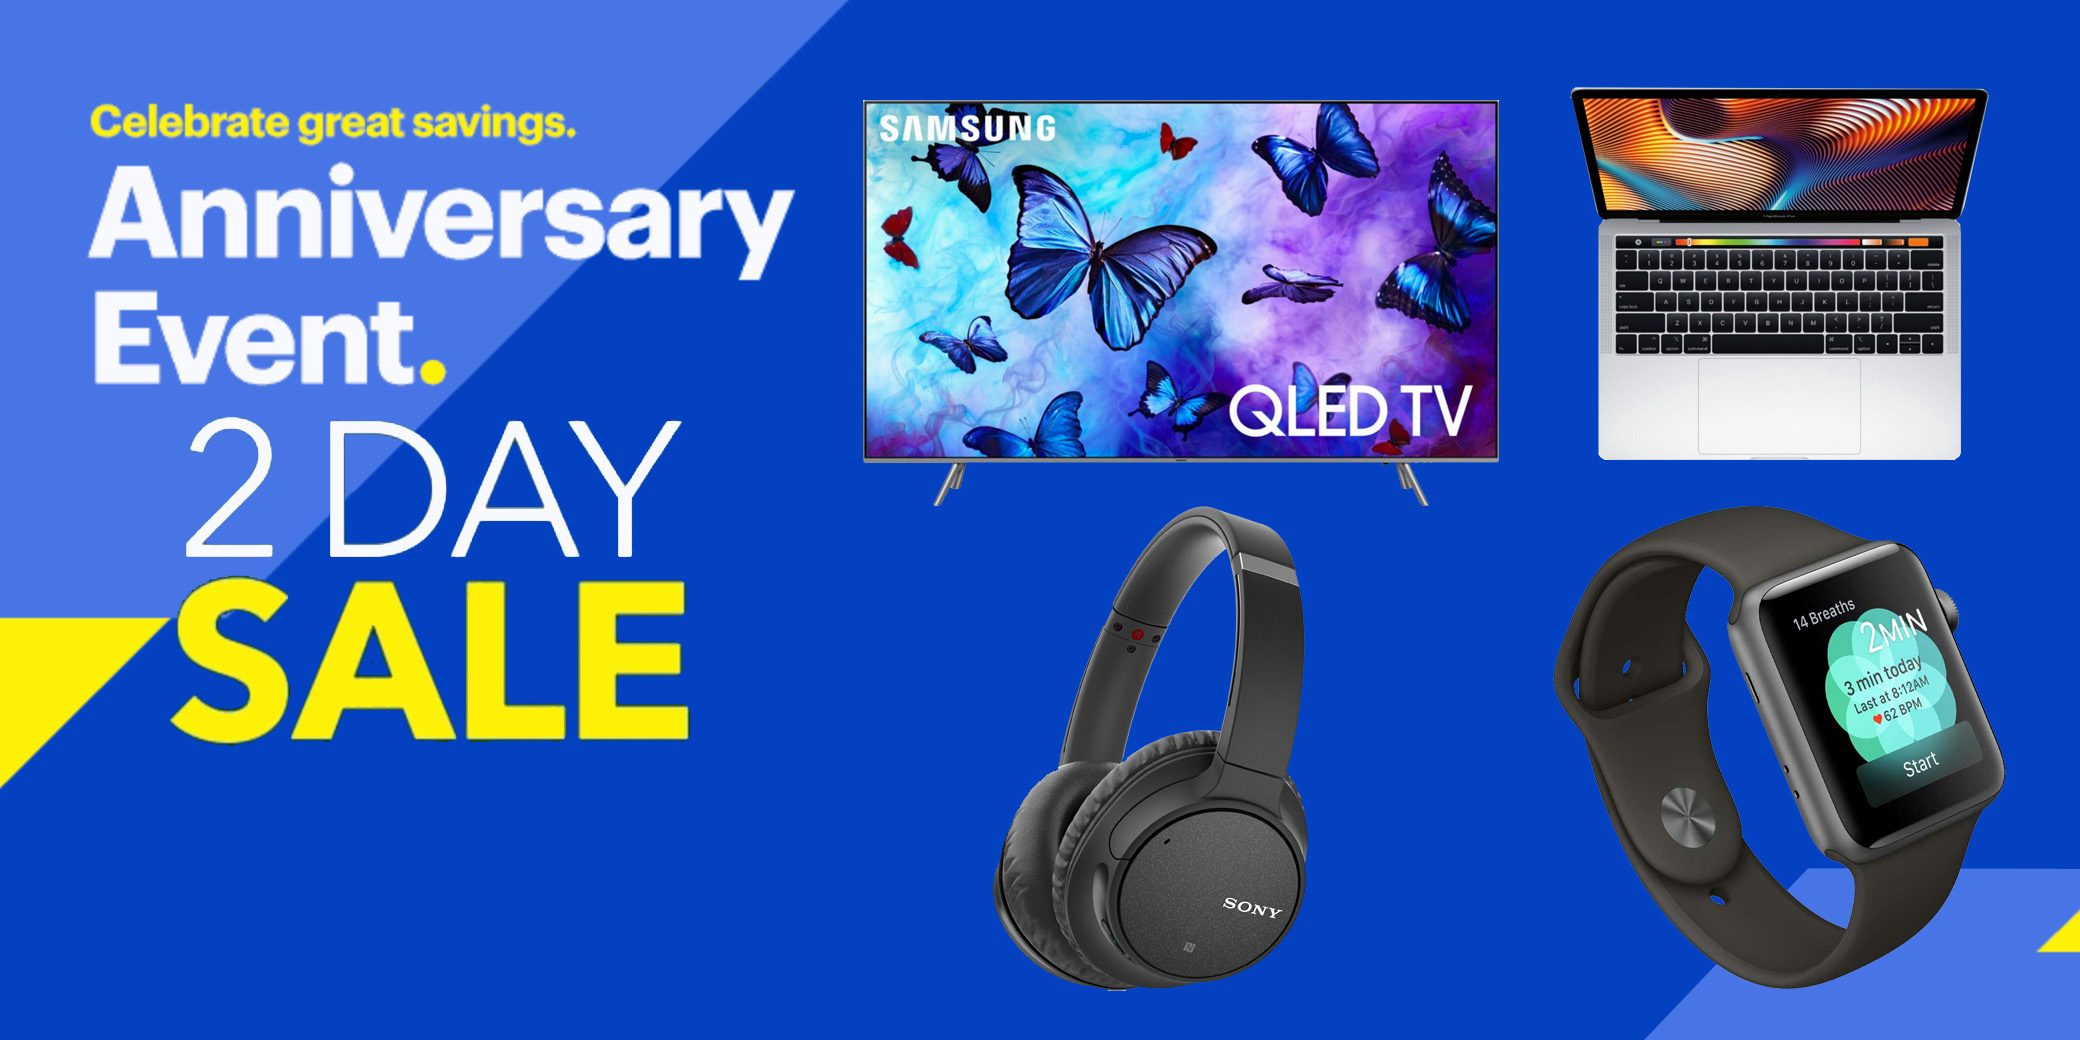 best buy 2 day anniversary sale up to 750 off macbooks apple watch tvs much more